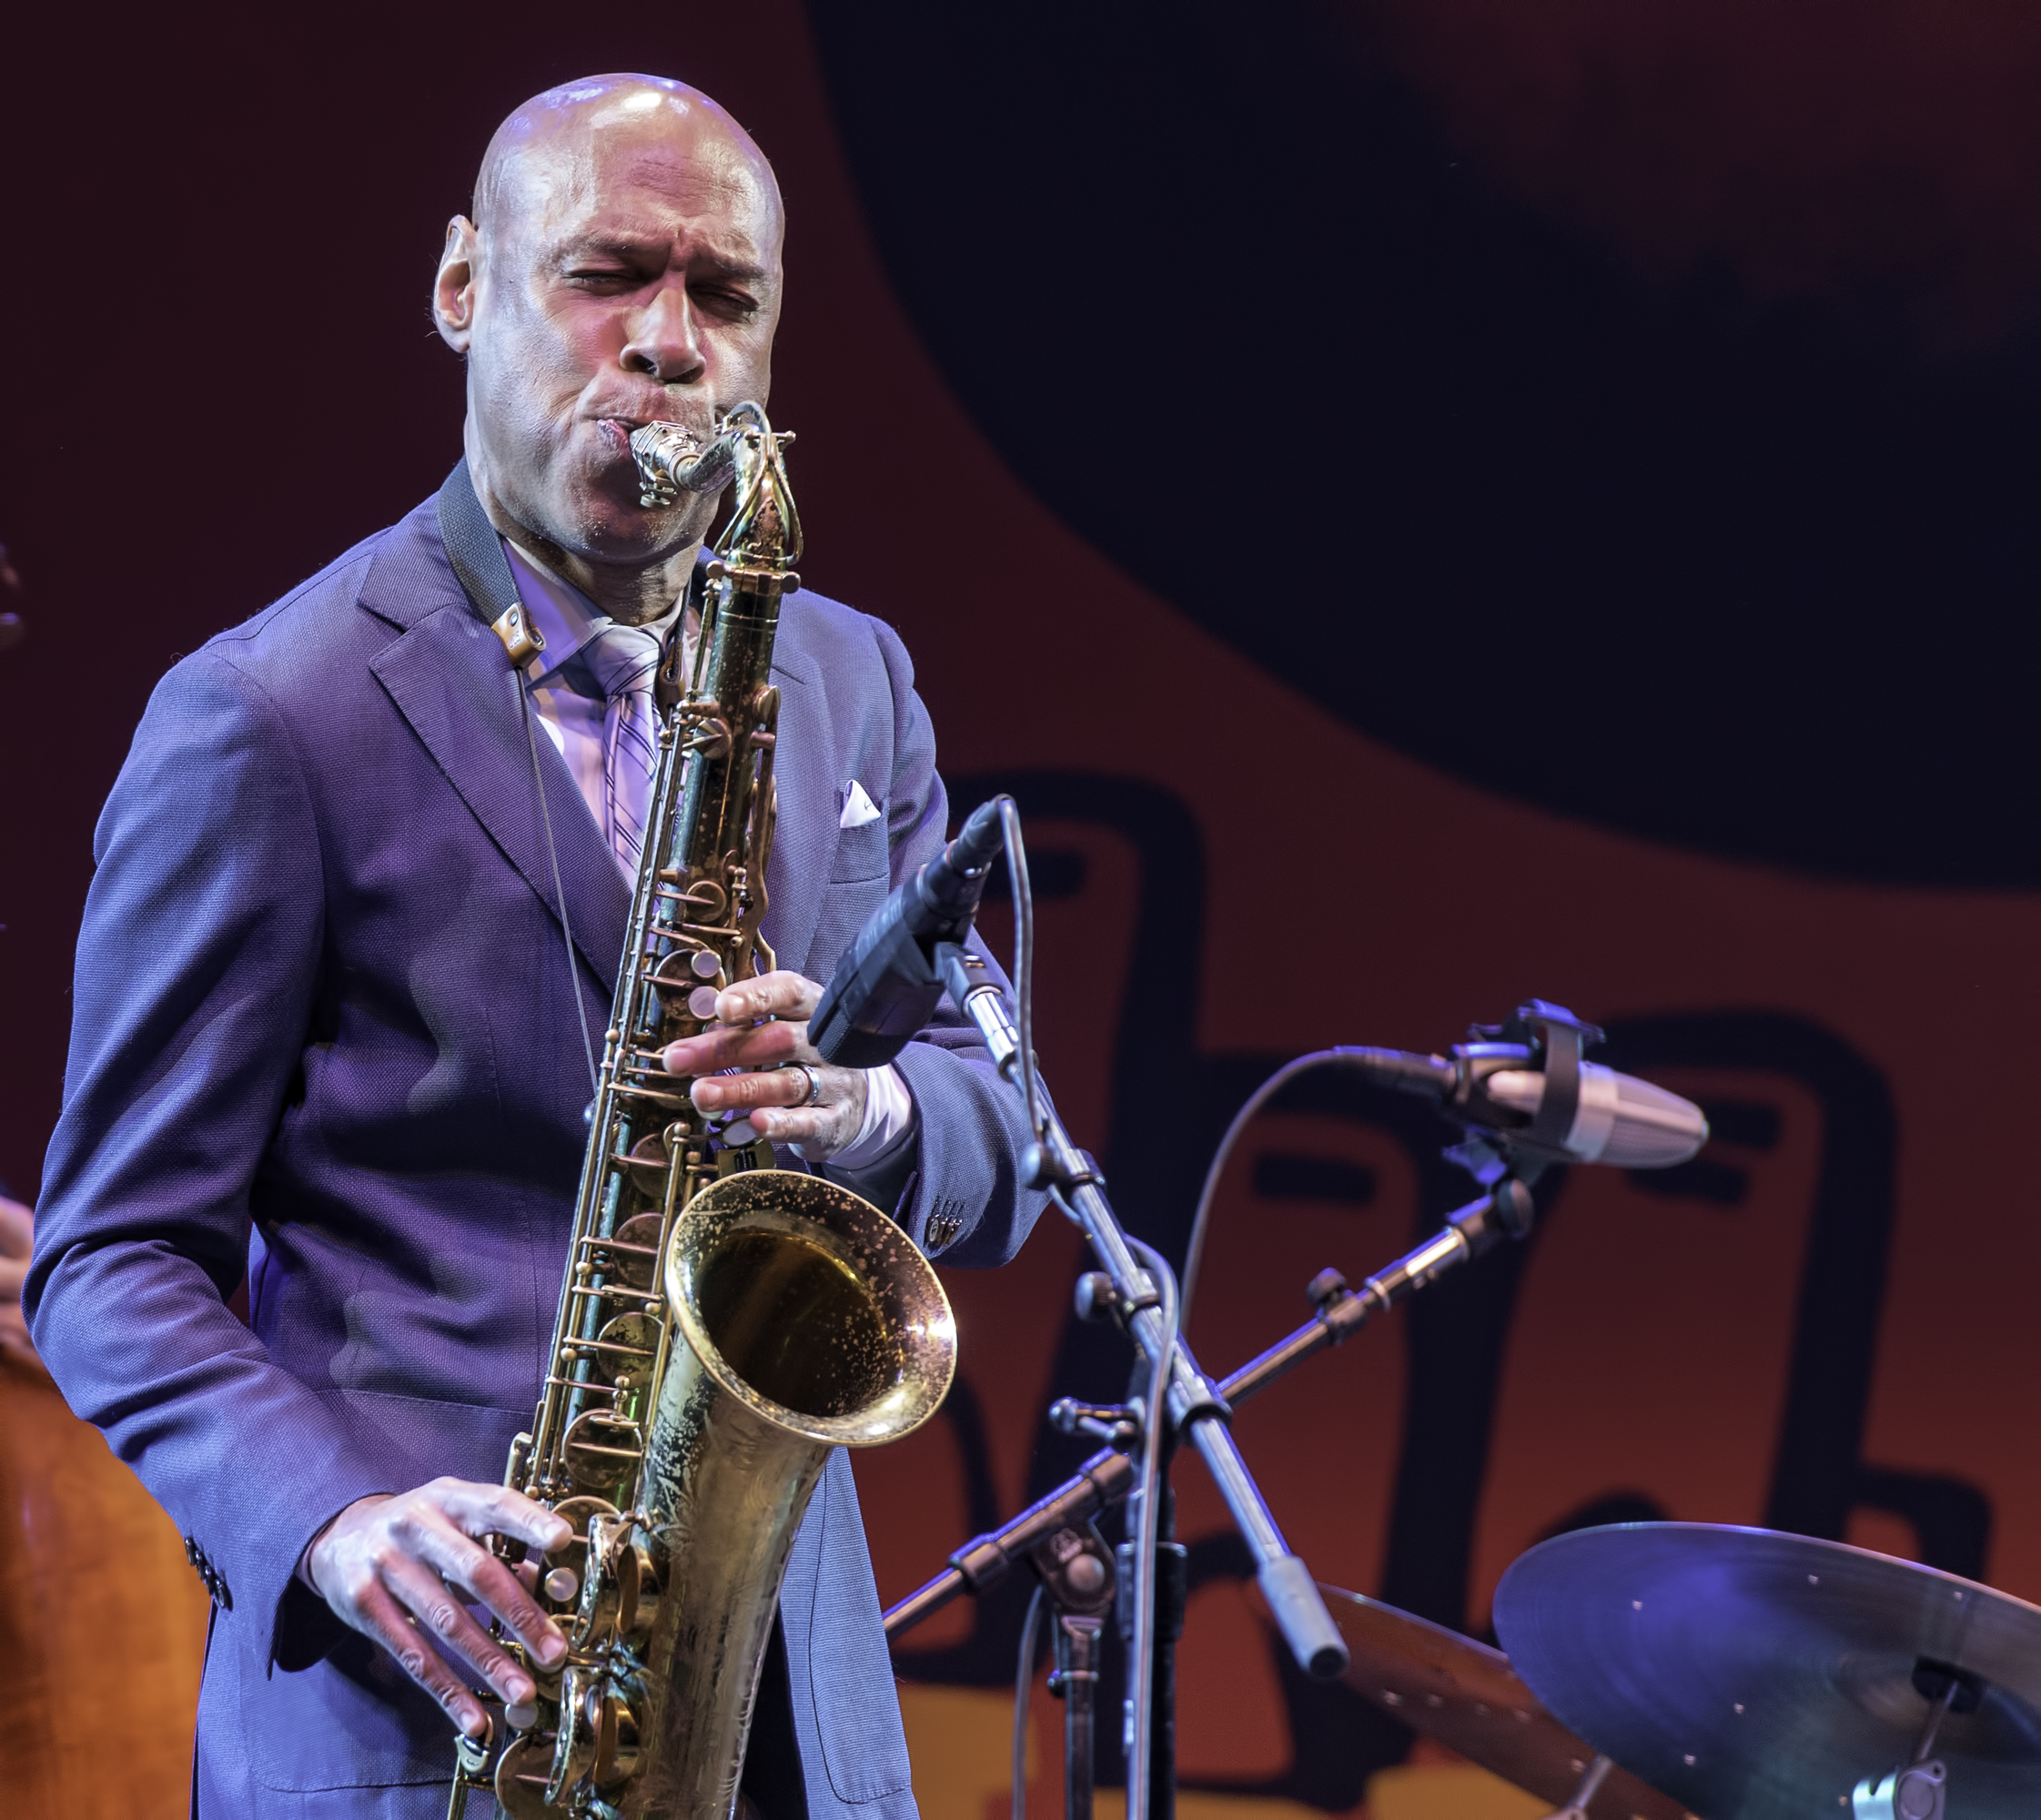 Joshua Redman with A Tribute to Sonny Rollins at the Monterey Jazz Festival